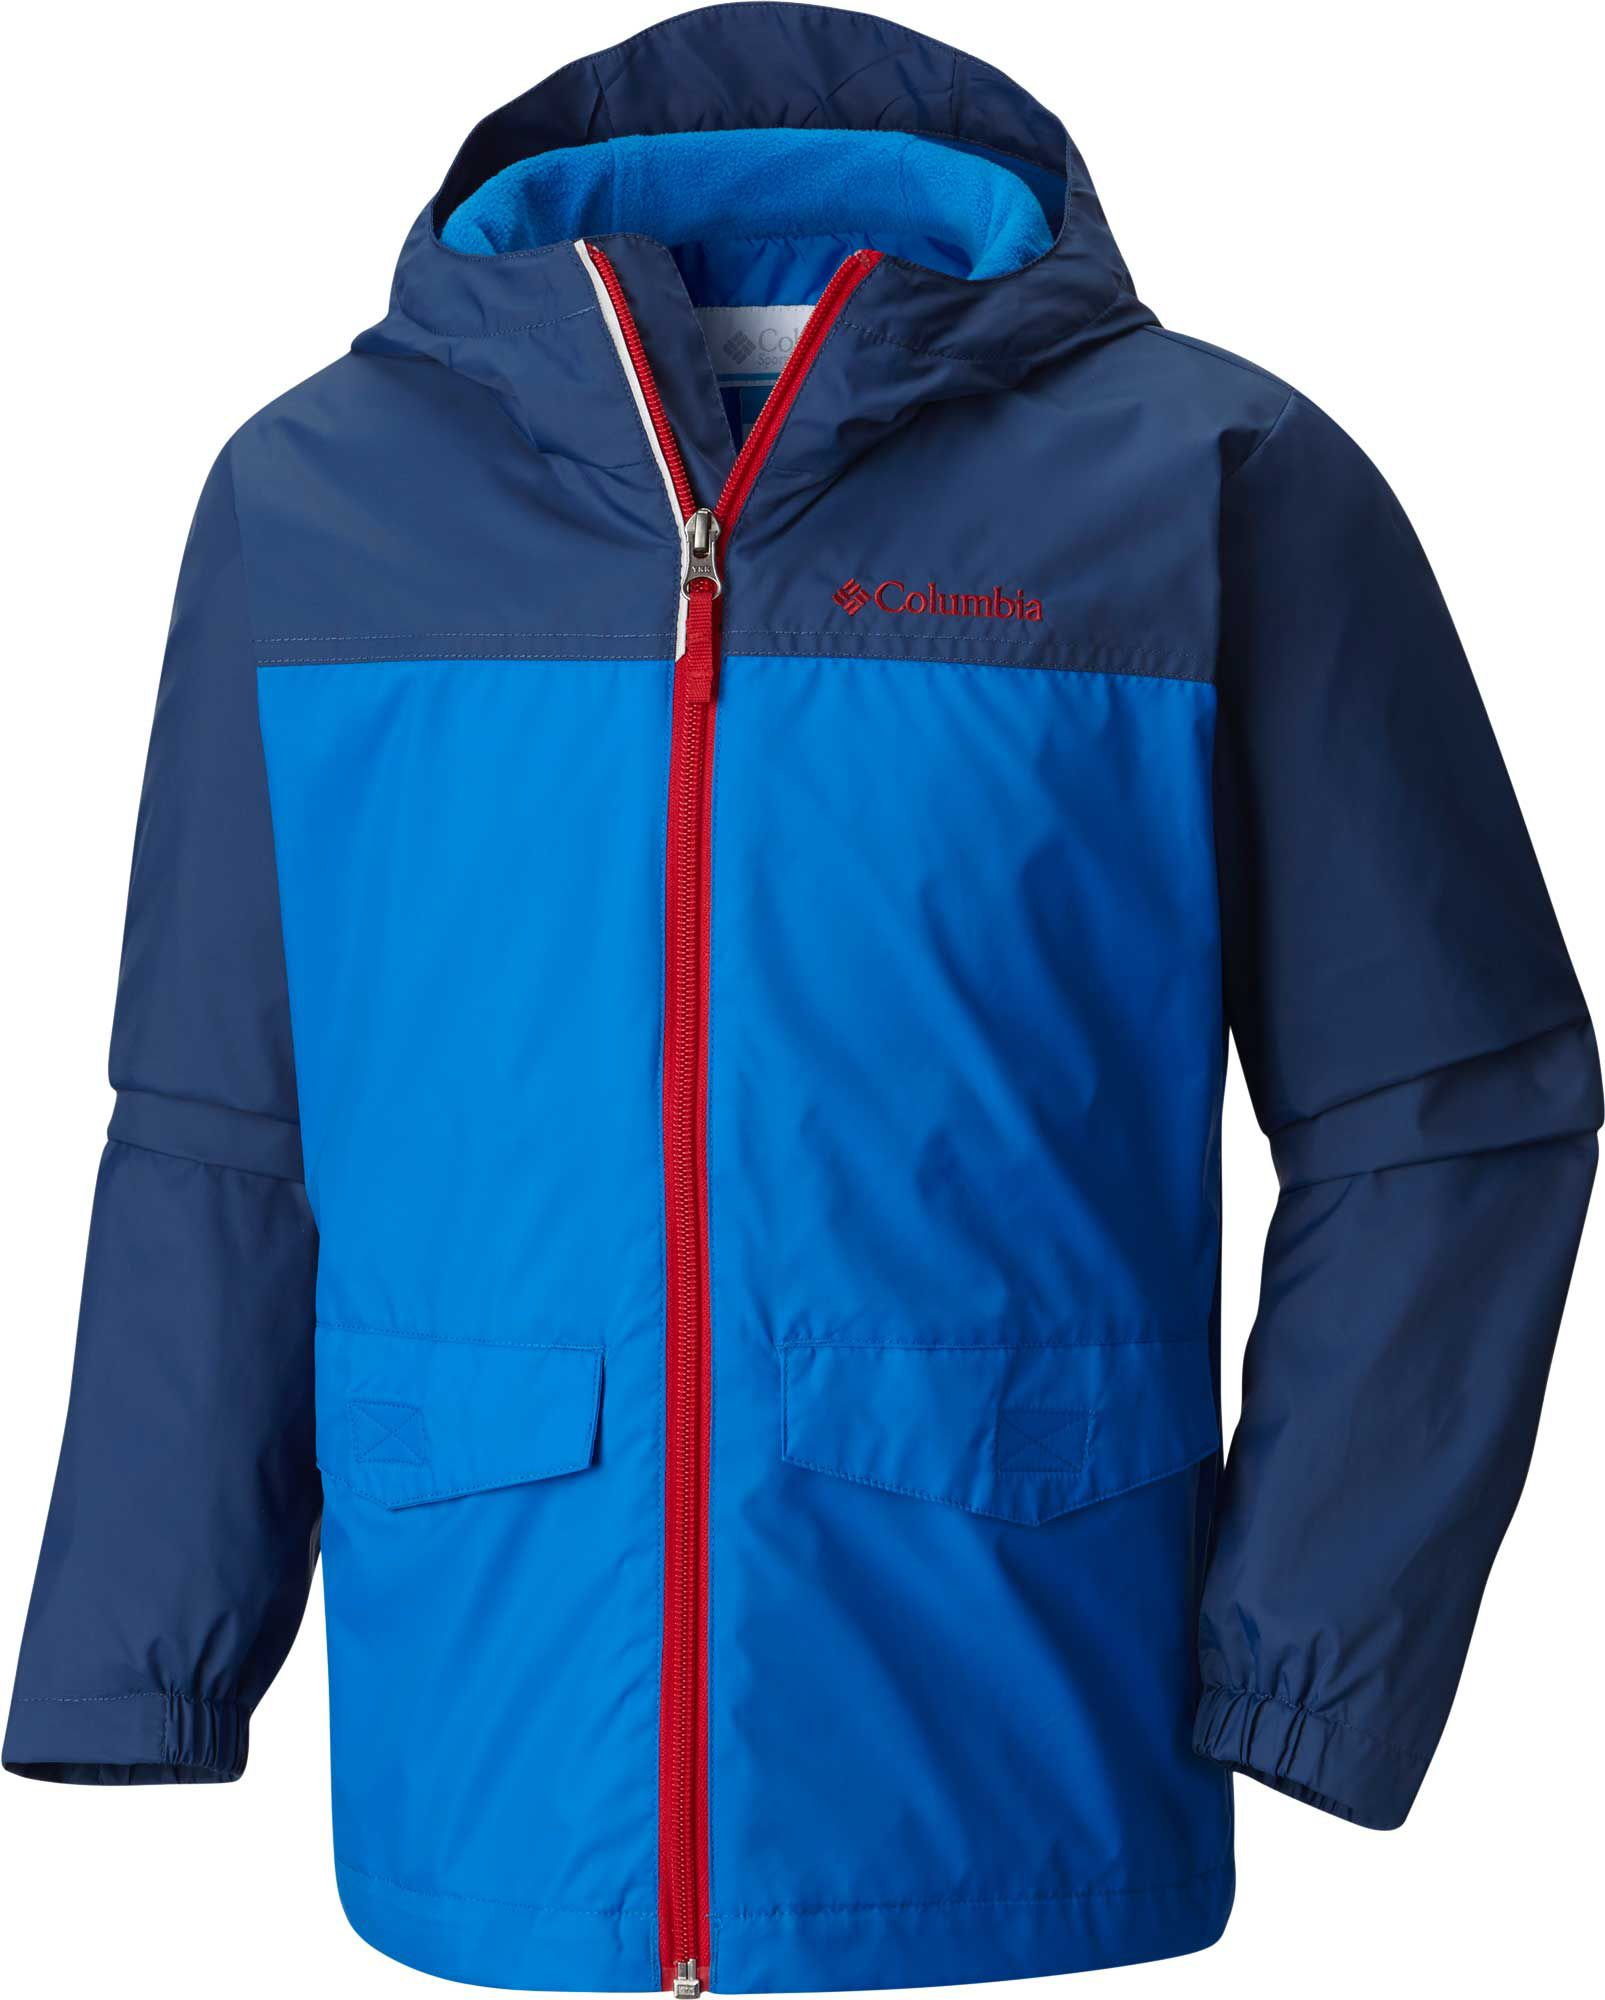 toddler boys winter coats jackets dick s sporting goods #0: 16cmbttddbrnzlljcapo super blue carbon is